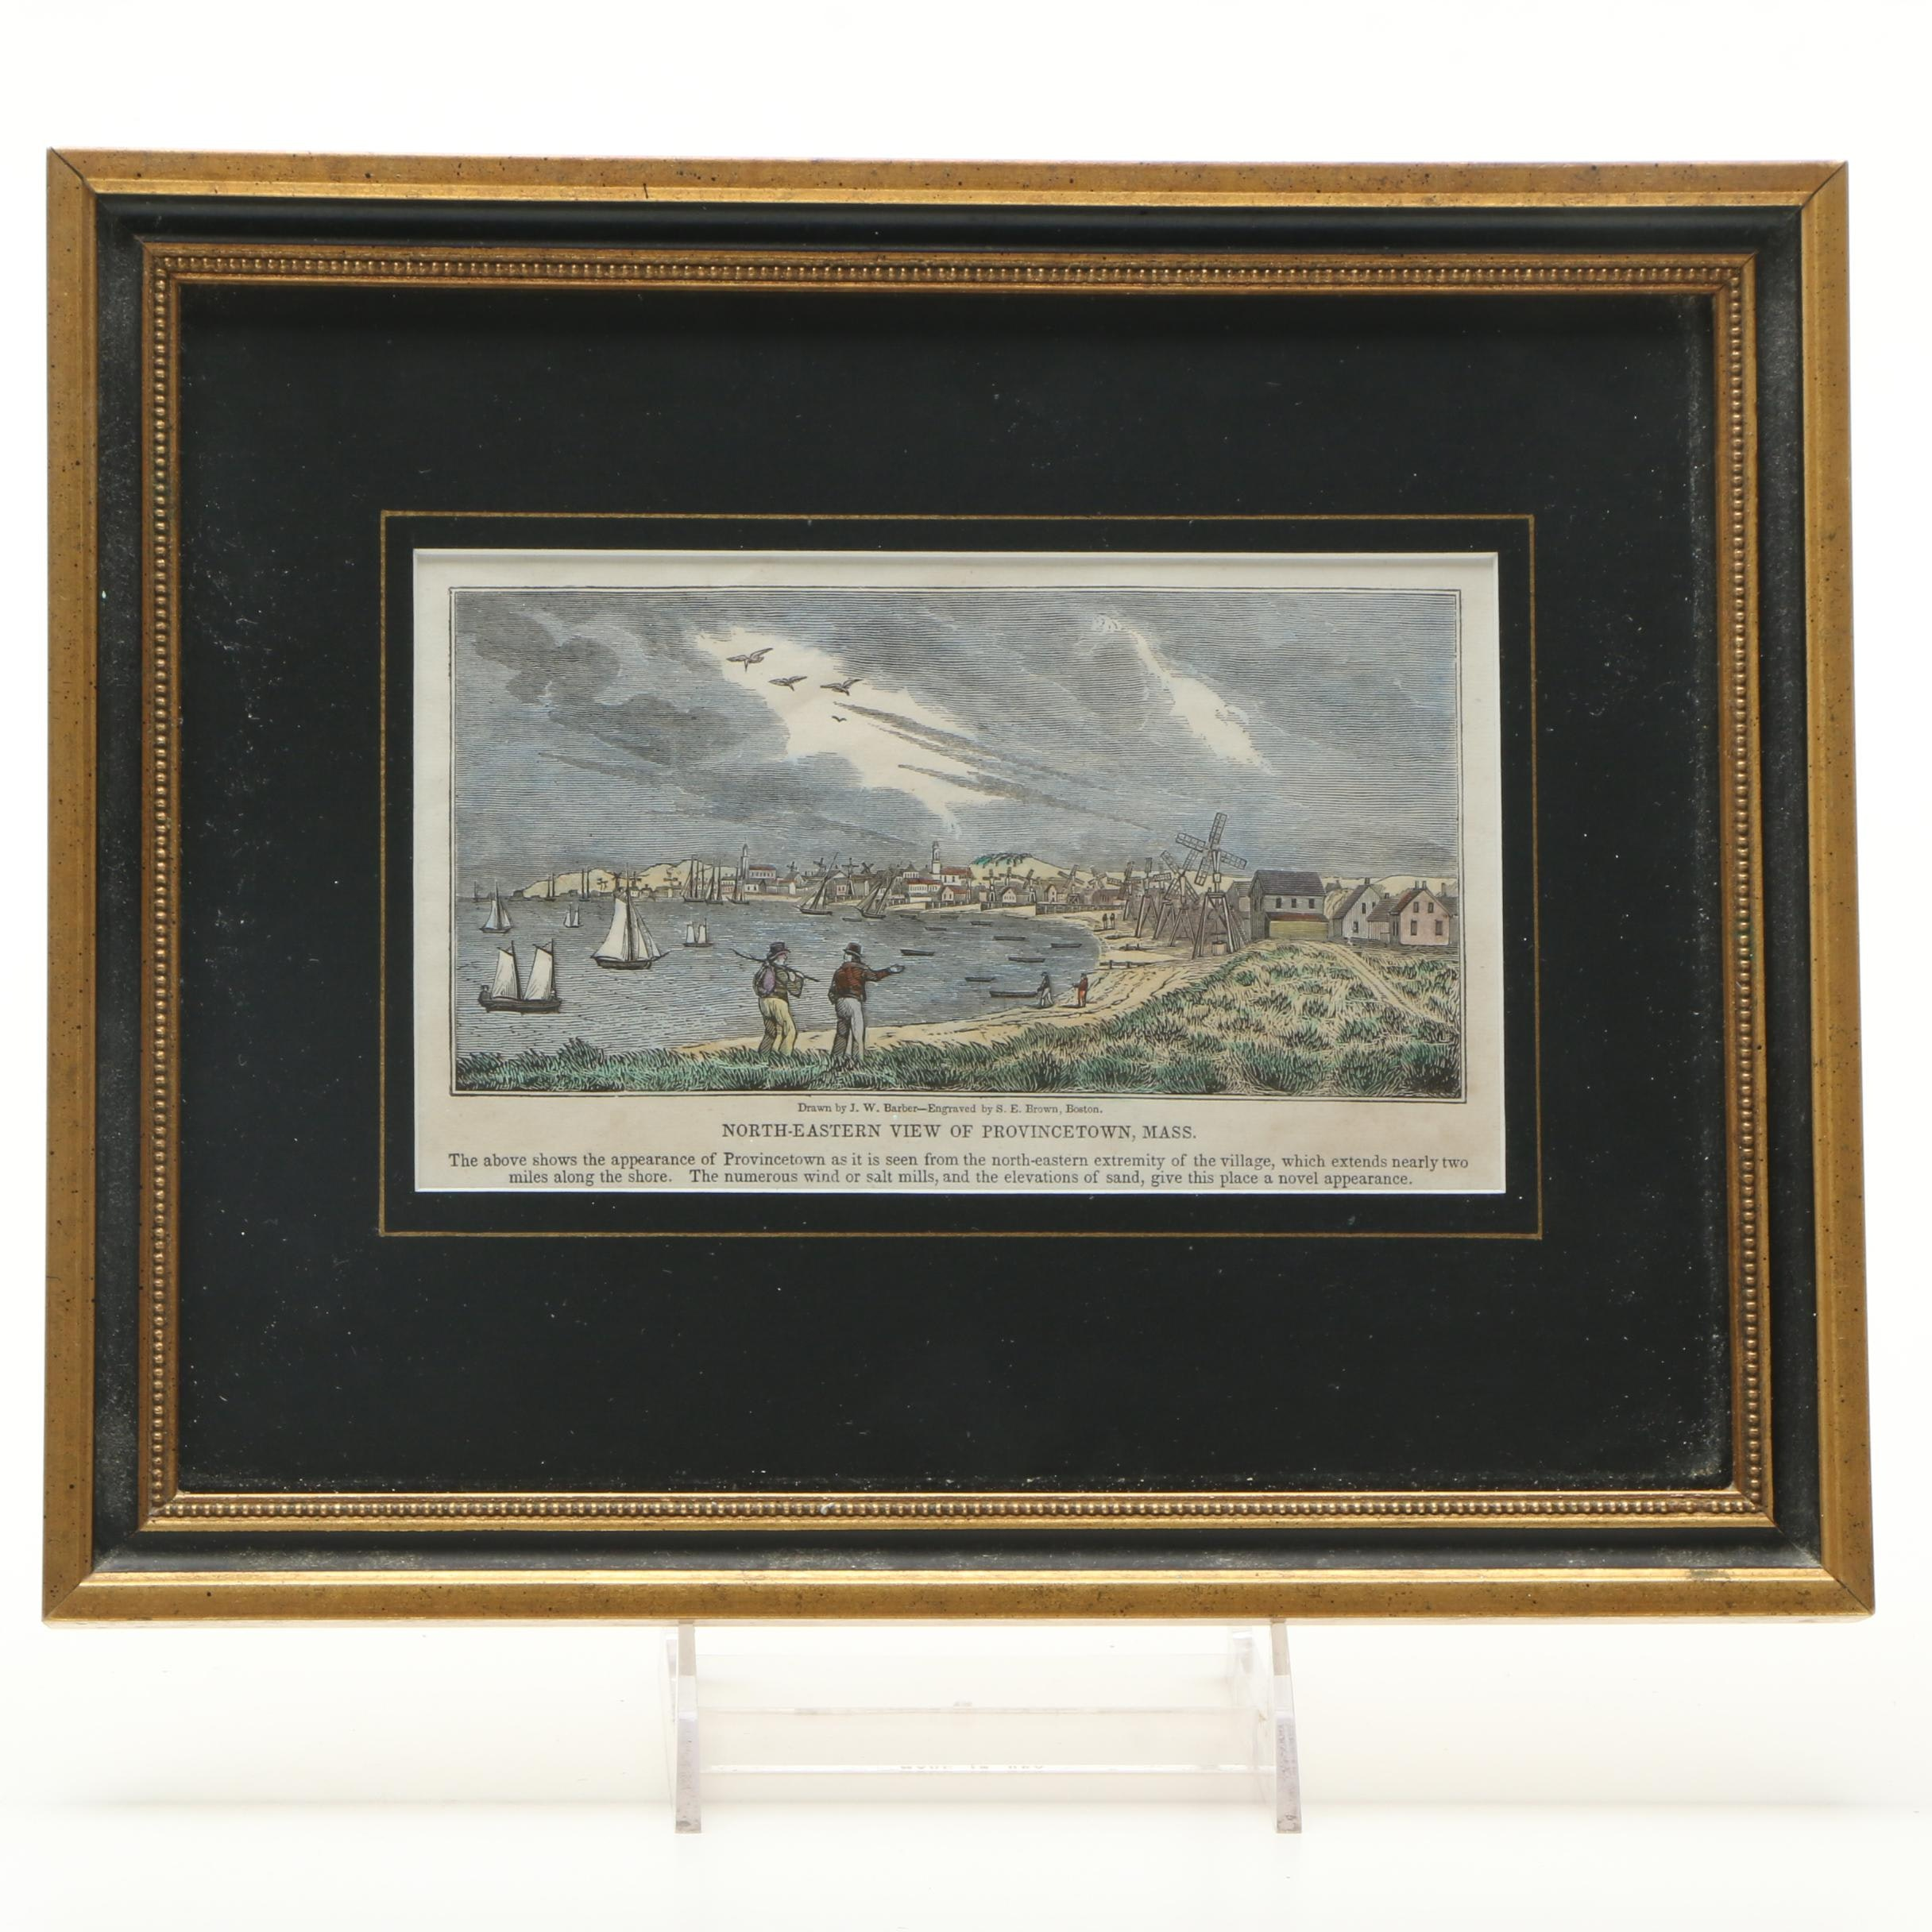 EArly 19th Century Hand-Colored Wood Engraving on Paper of Provincetown, MA